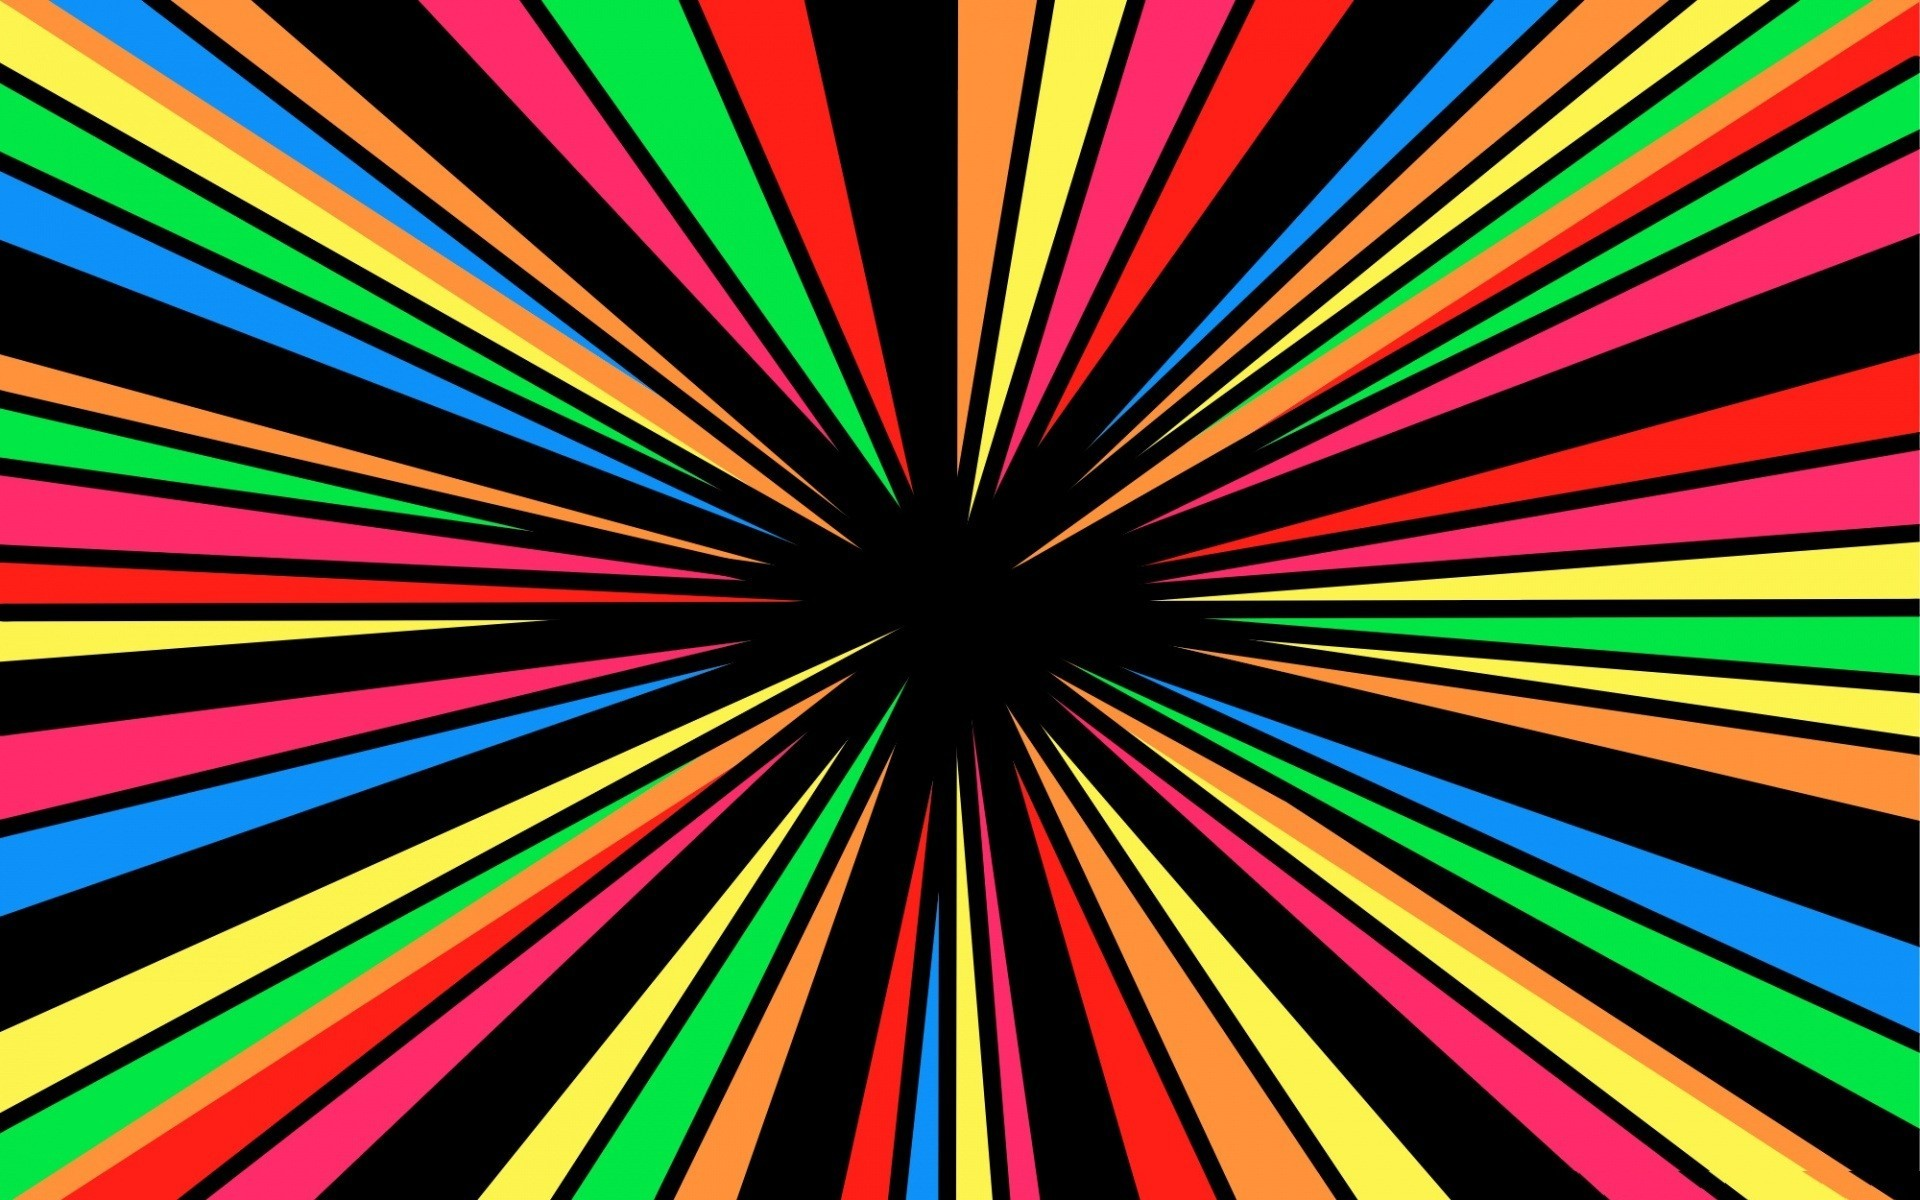 1920x1200 abstract rainbows vortex colorful wallpaper hd hd wallpapers desktop images  windows wallpapers amazing colourful 4k picture